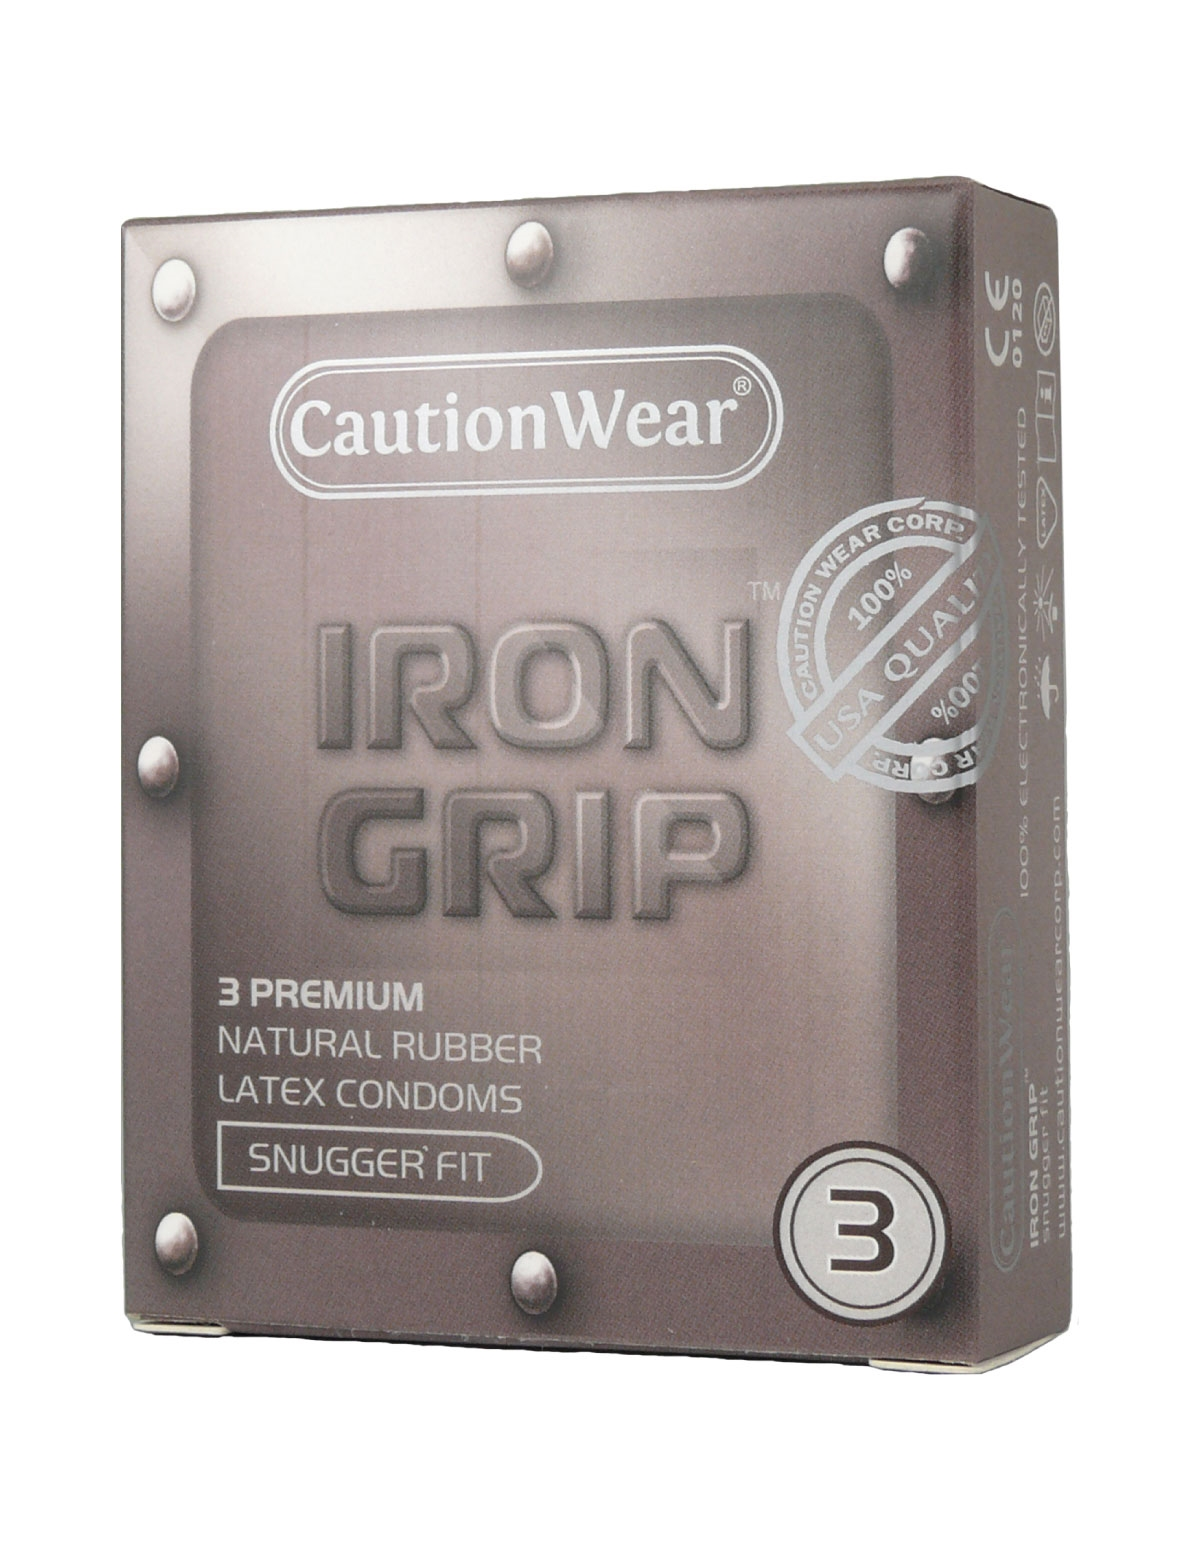 Iron Grip Condom 3 Pack